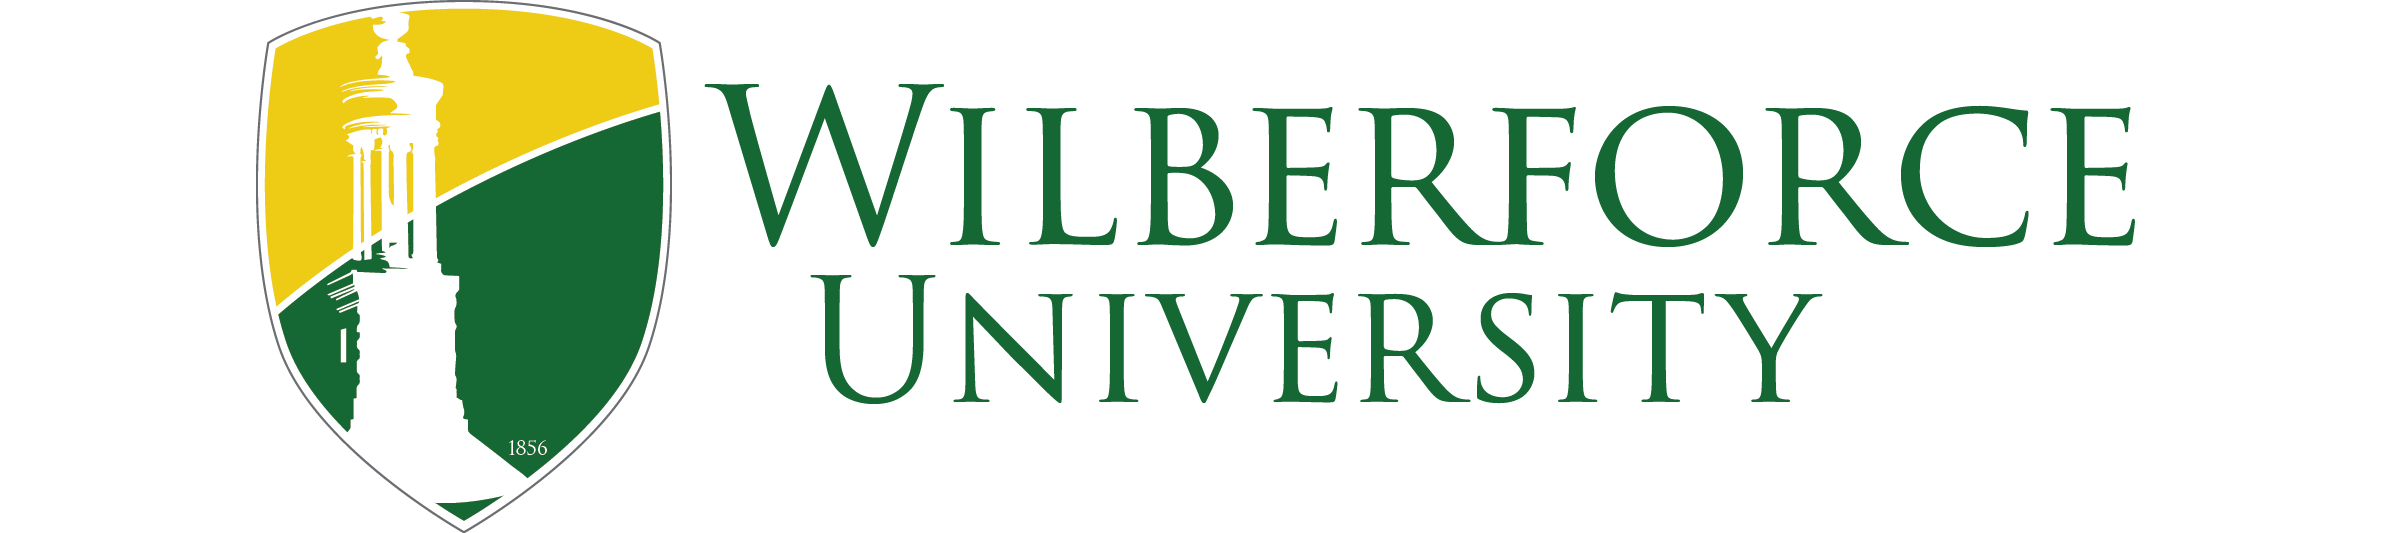 Celebrating Black History Through Education: Wilberforce University